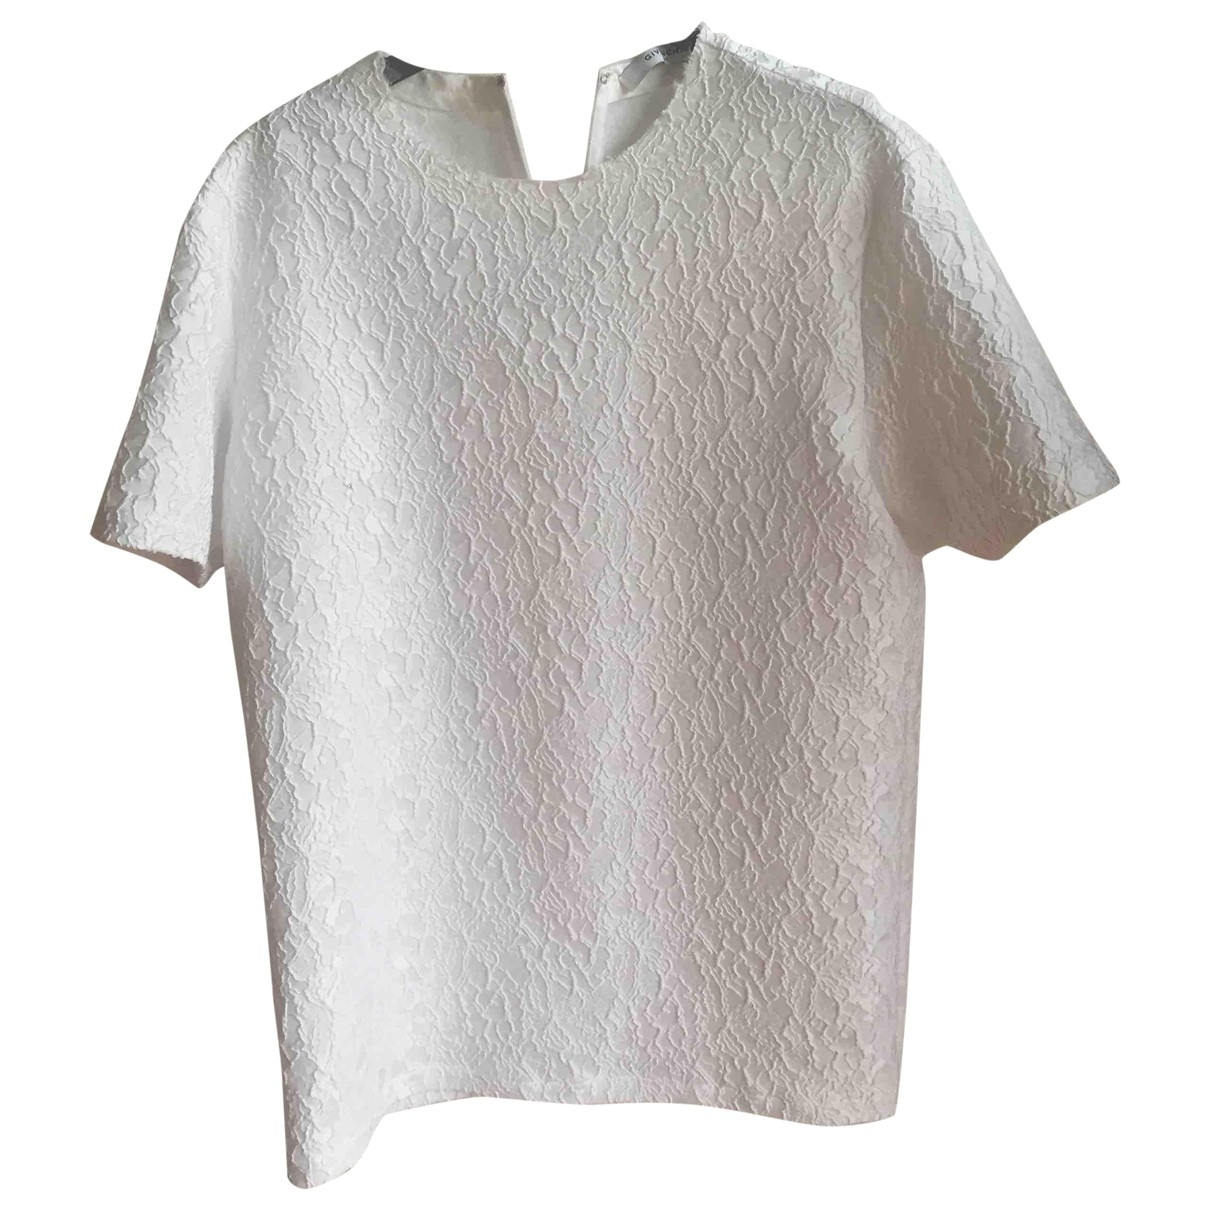 Givenchy \N Top in  Weiss Synthetik